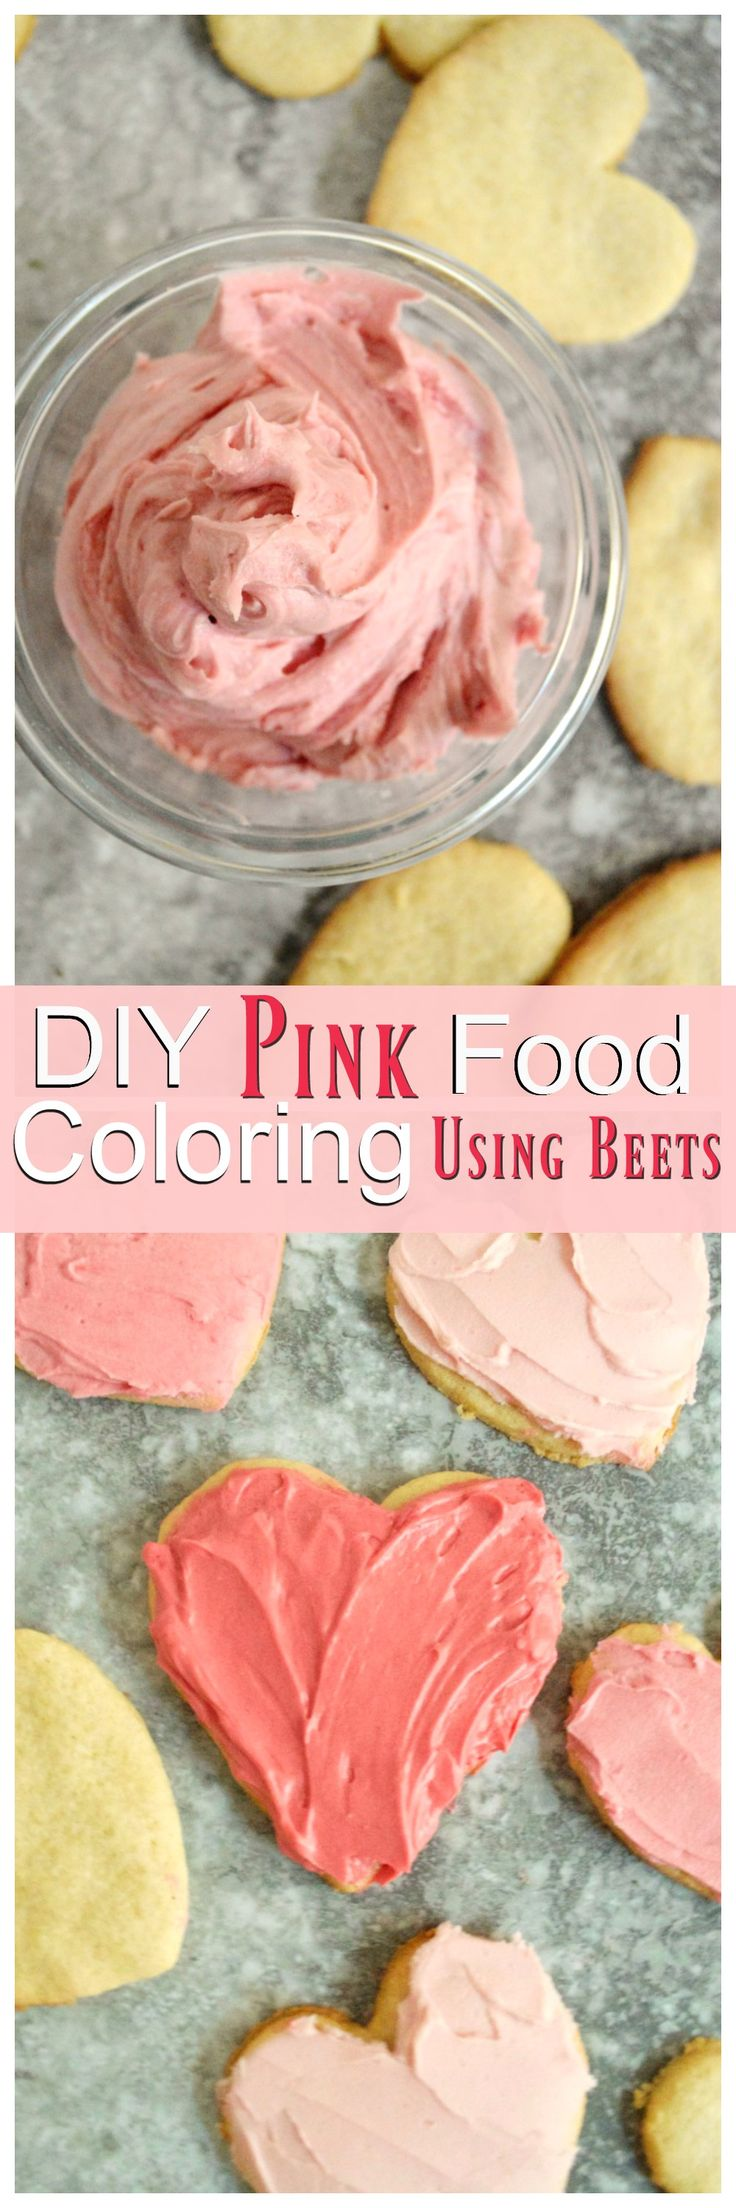 How to Make Pink Food Coloring Naturally Using Beets| Kalecuties.com - Just 4 easy steps.